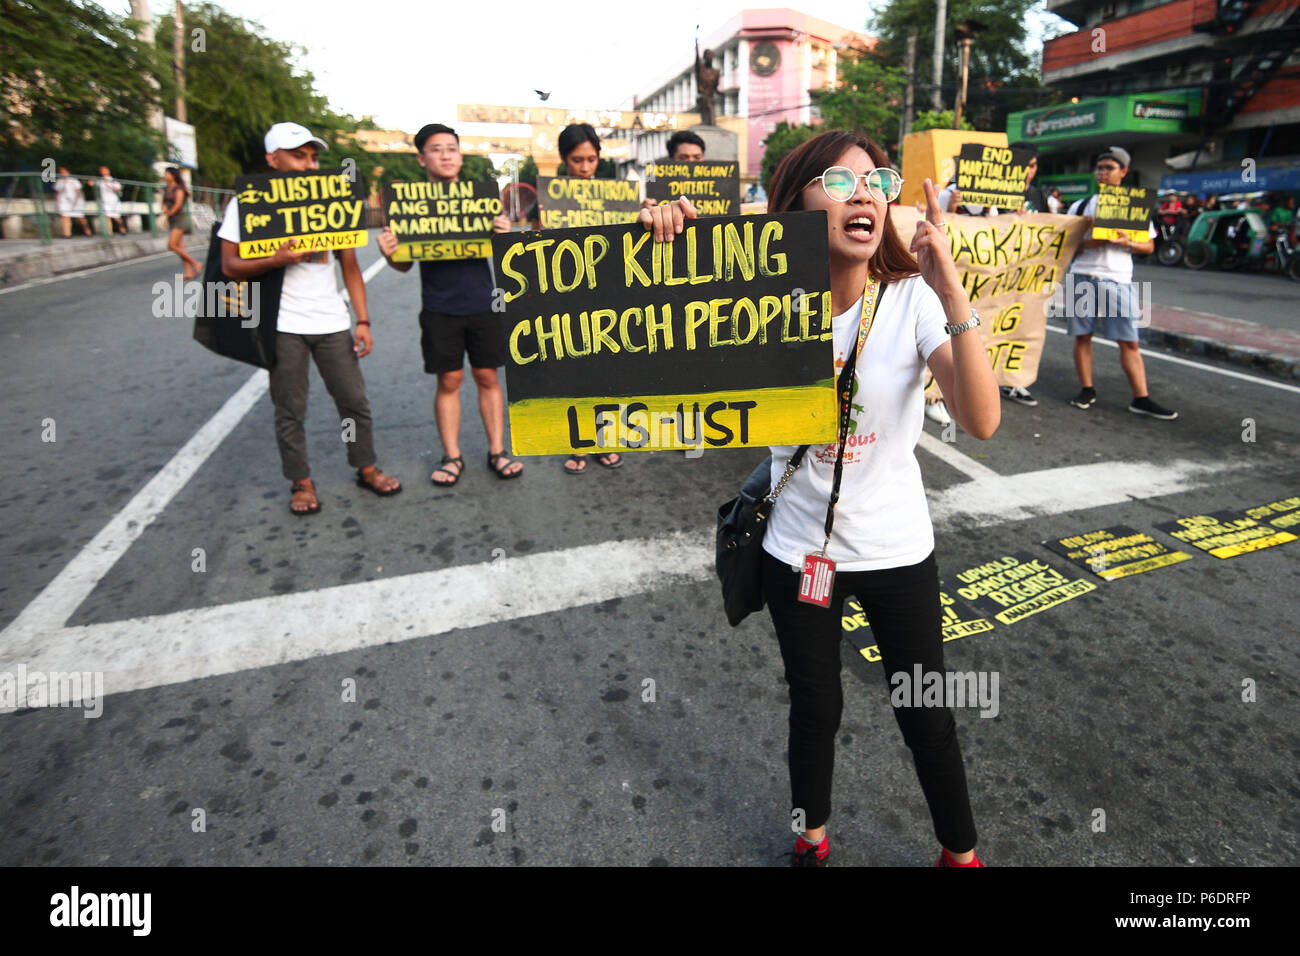 June 29, 2018 - Philippines - Students from the University of Santo Thomas staged a lightning rally near the presidential palace in Mendiola, against the recent deaths of Catholic priests. Part of the nationwide Black Friday protests, the students called for justice for Genesis 'Tisoy' Argoncillo's death while in police detention for loitering. The group also called for the end of the Martial Law in Mindanao. (Credit Image: © J Gerard Seguia via ZUMA Wire) - Stock Image